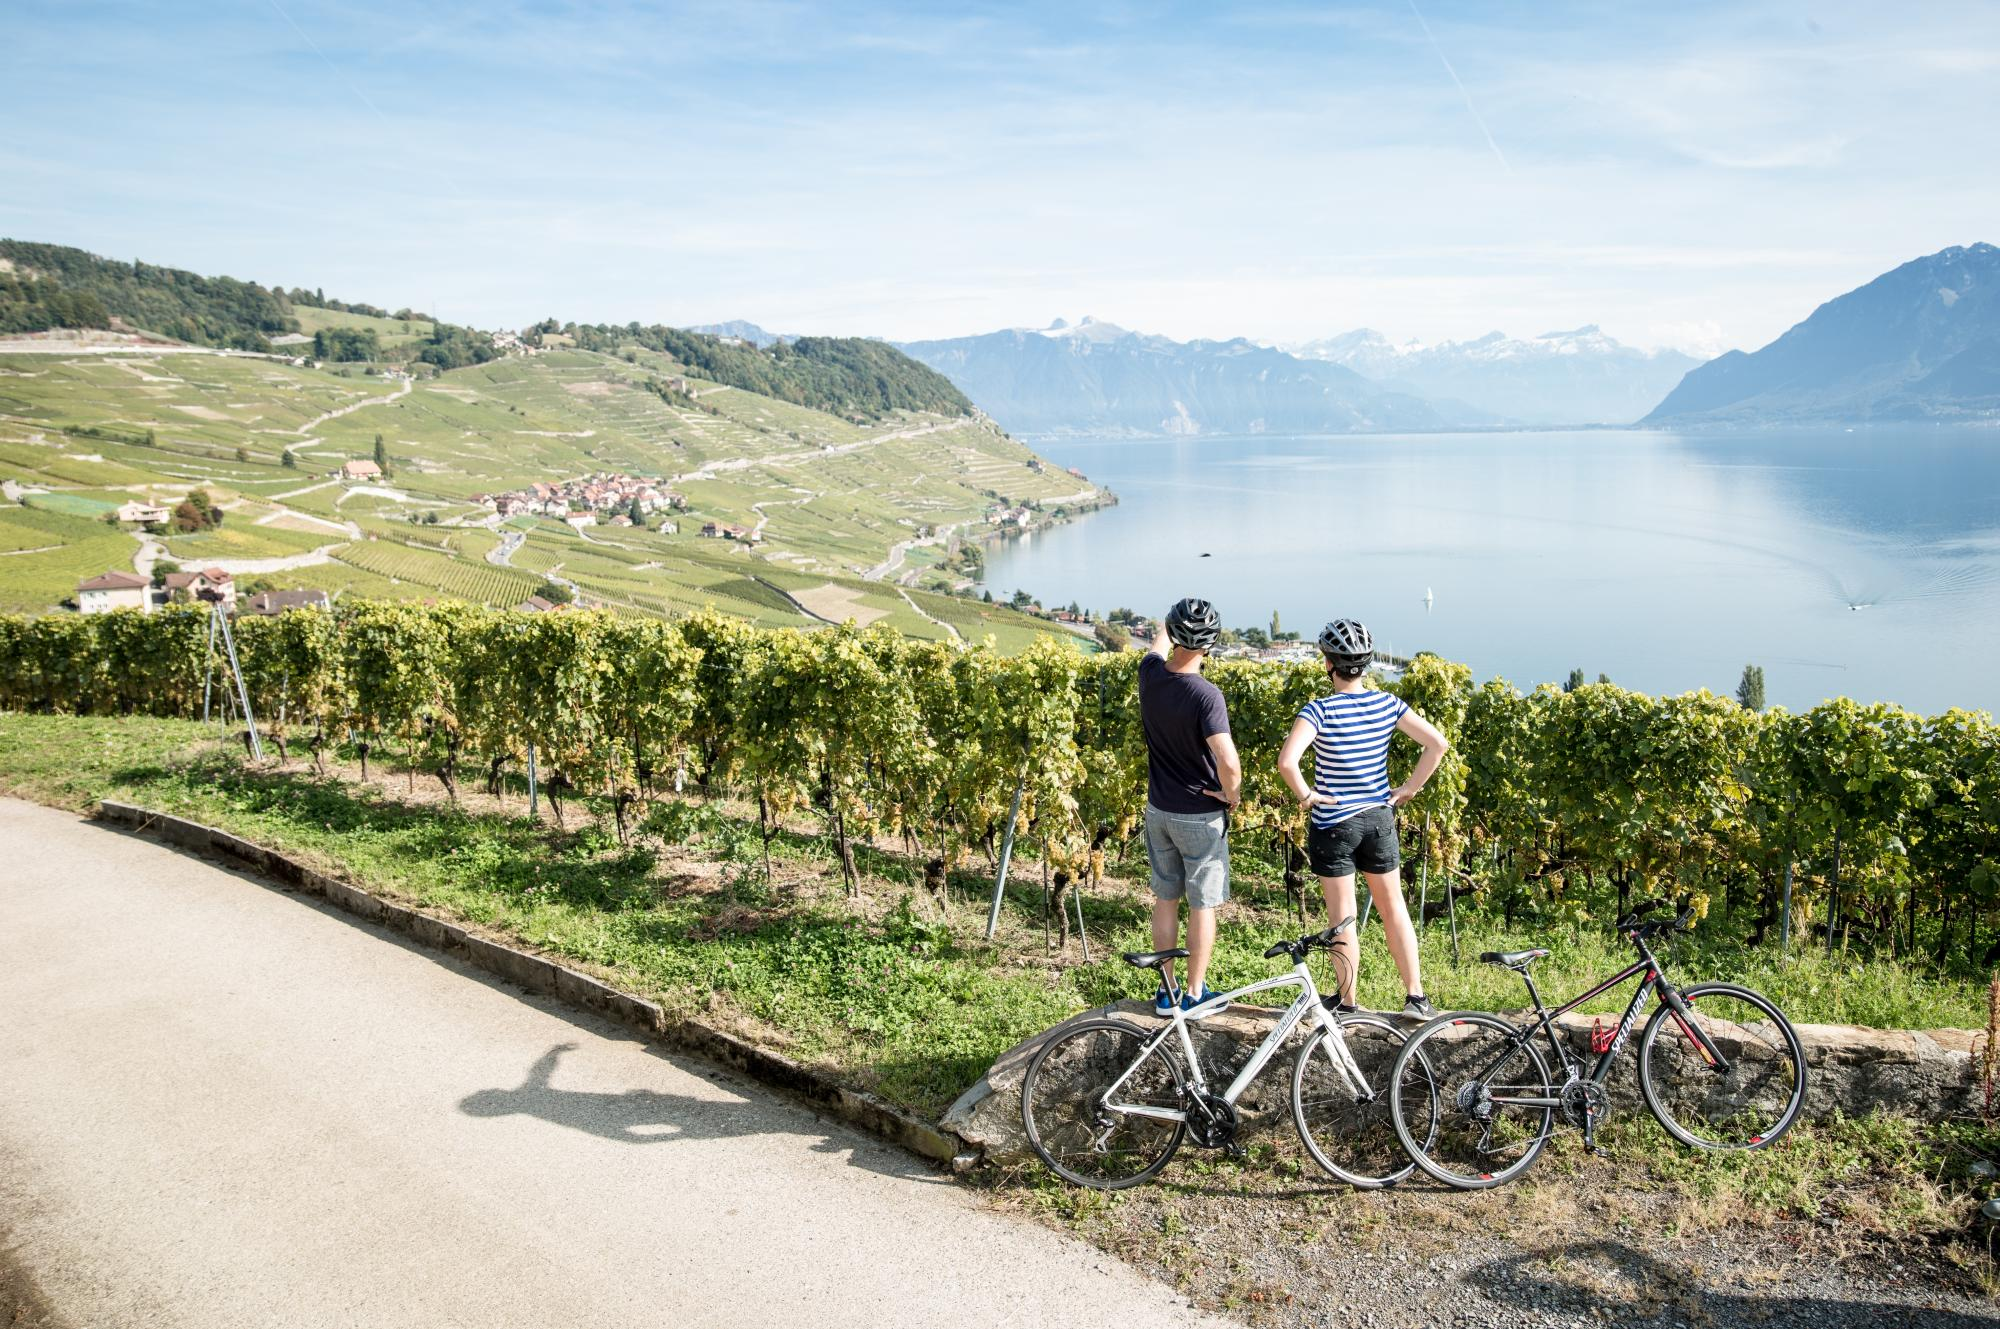 Biking directions in Lavaux